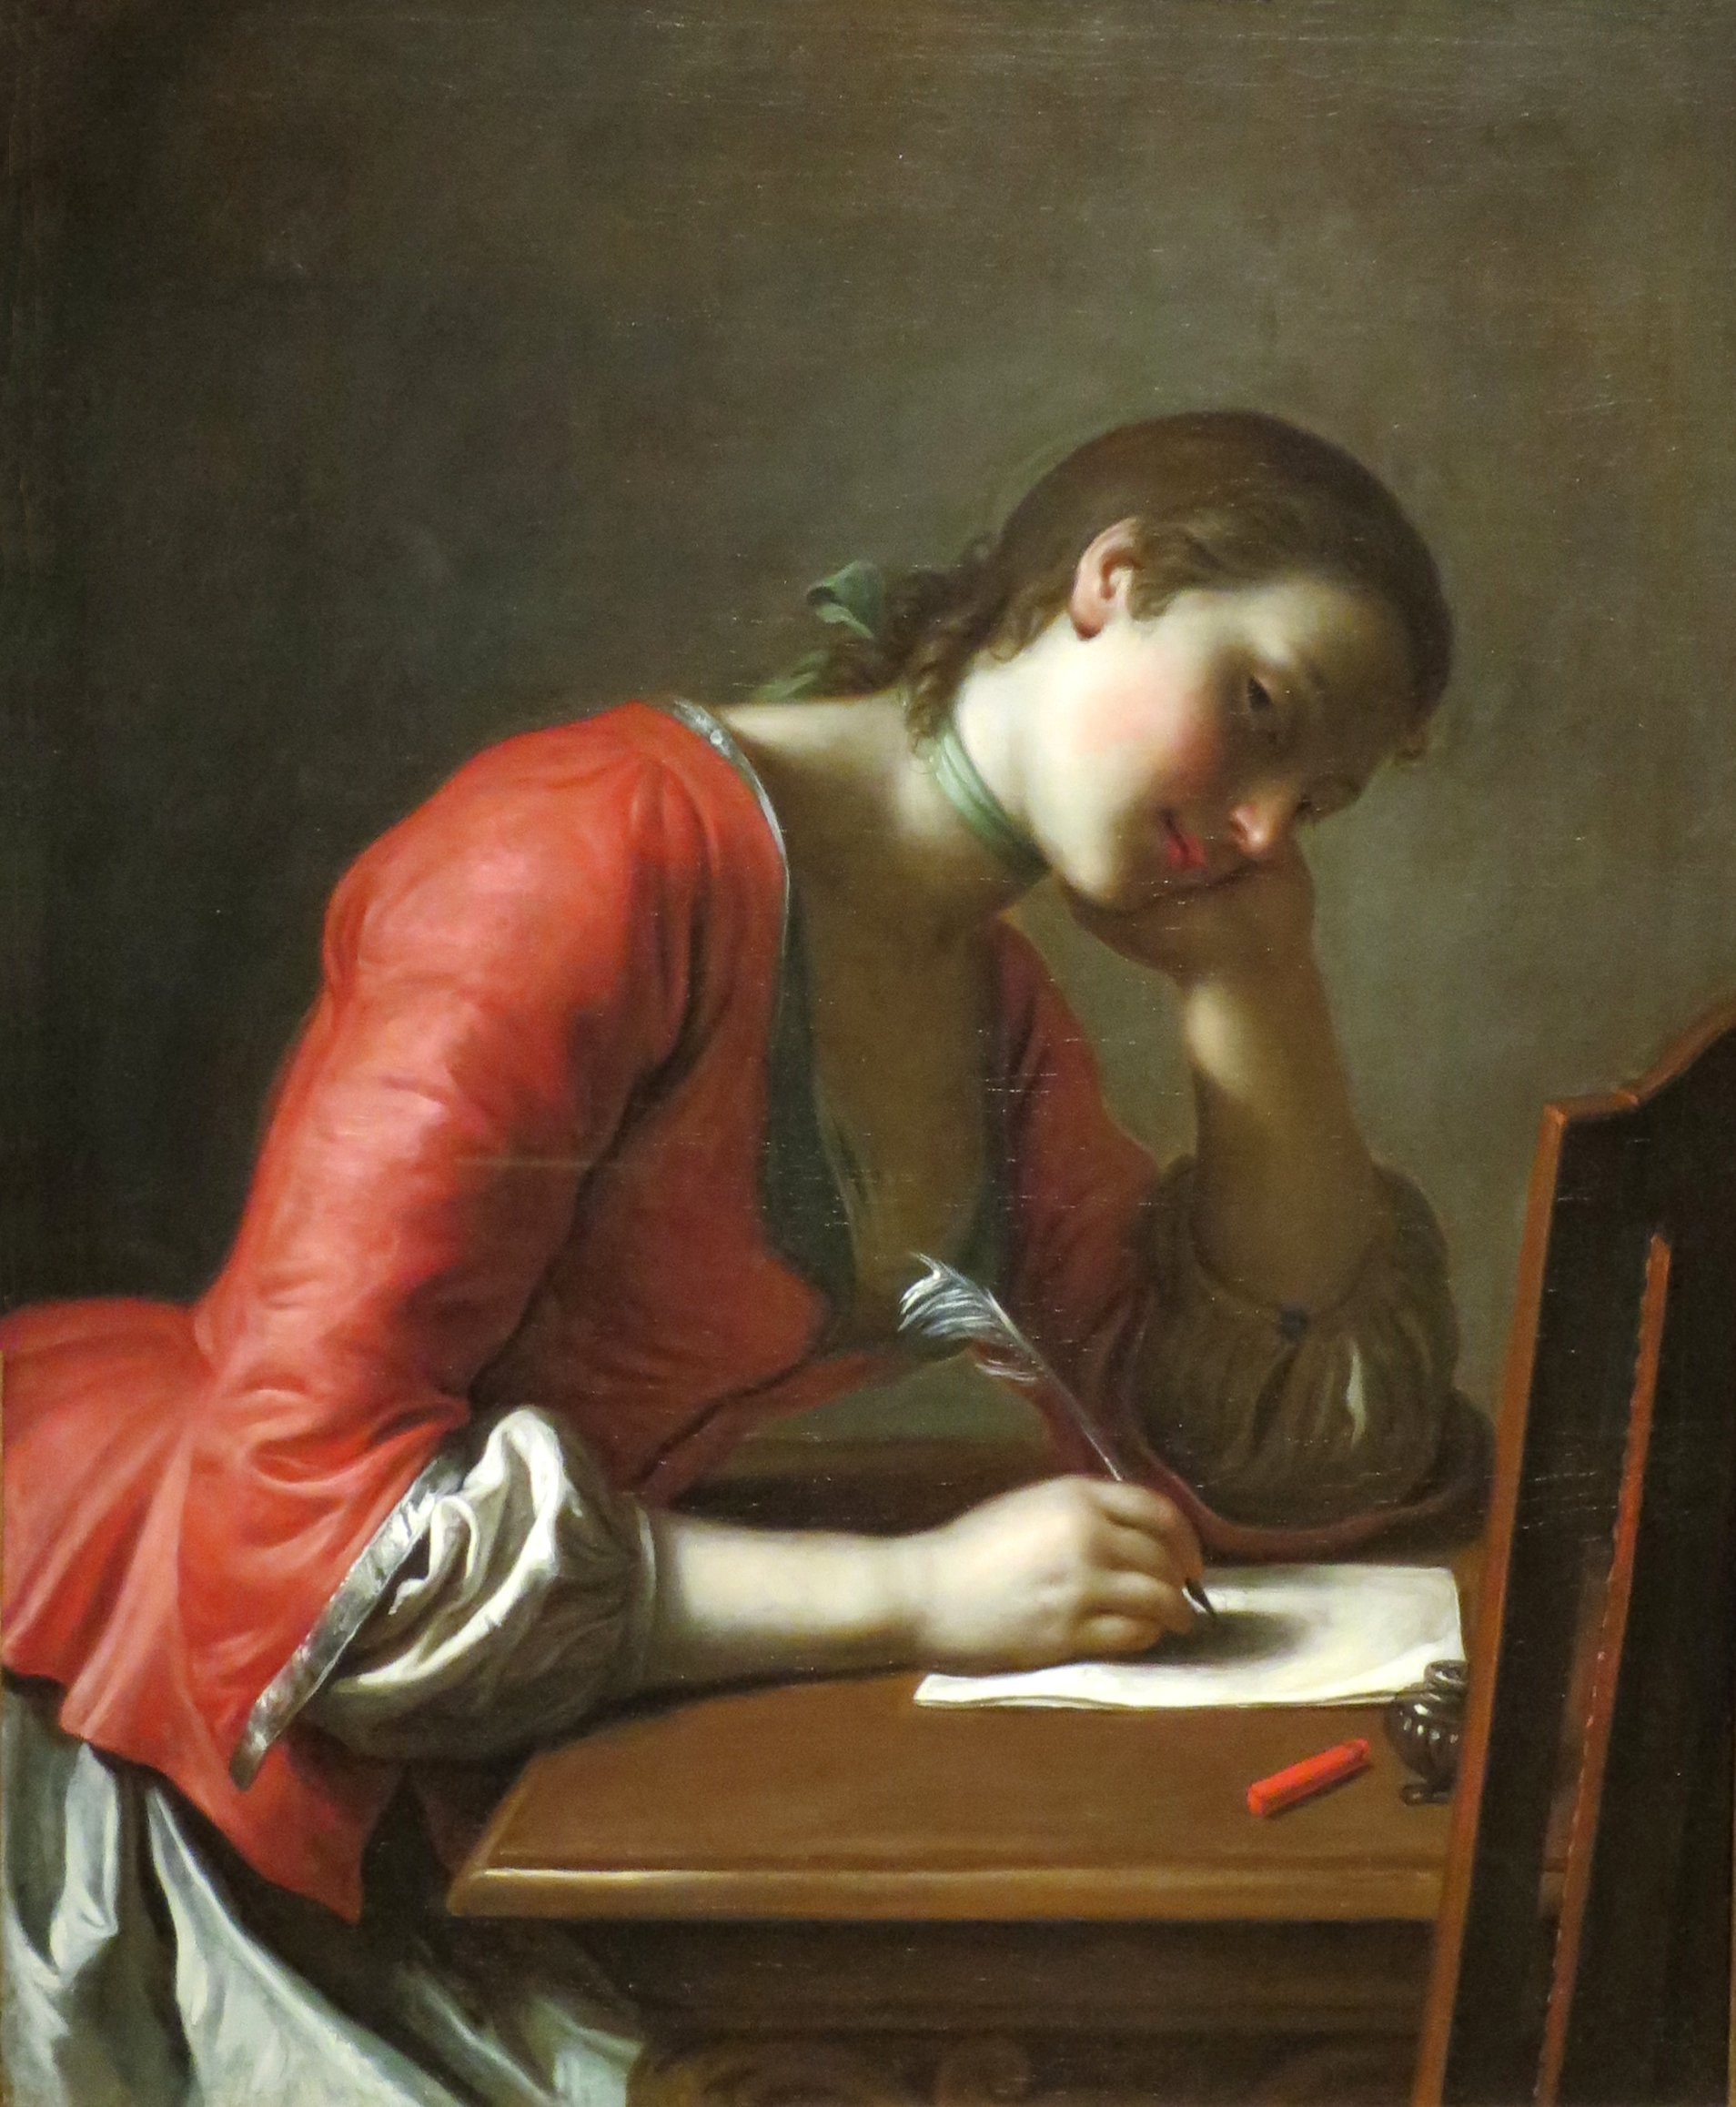 Have we forgotten how to write from the heart - and hand?